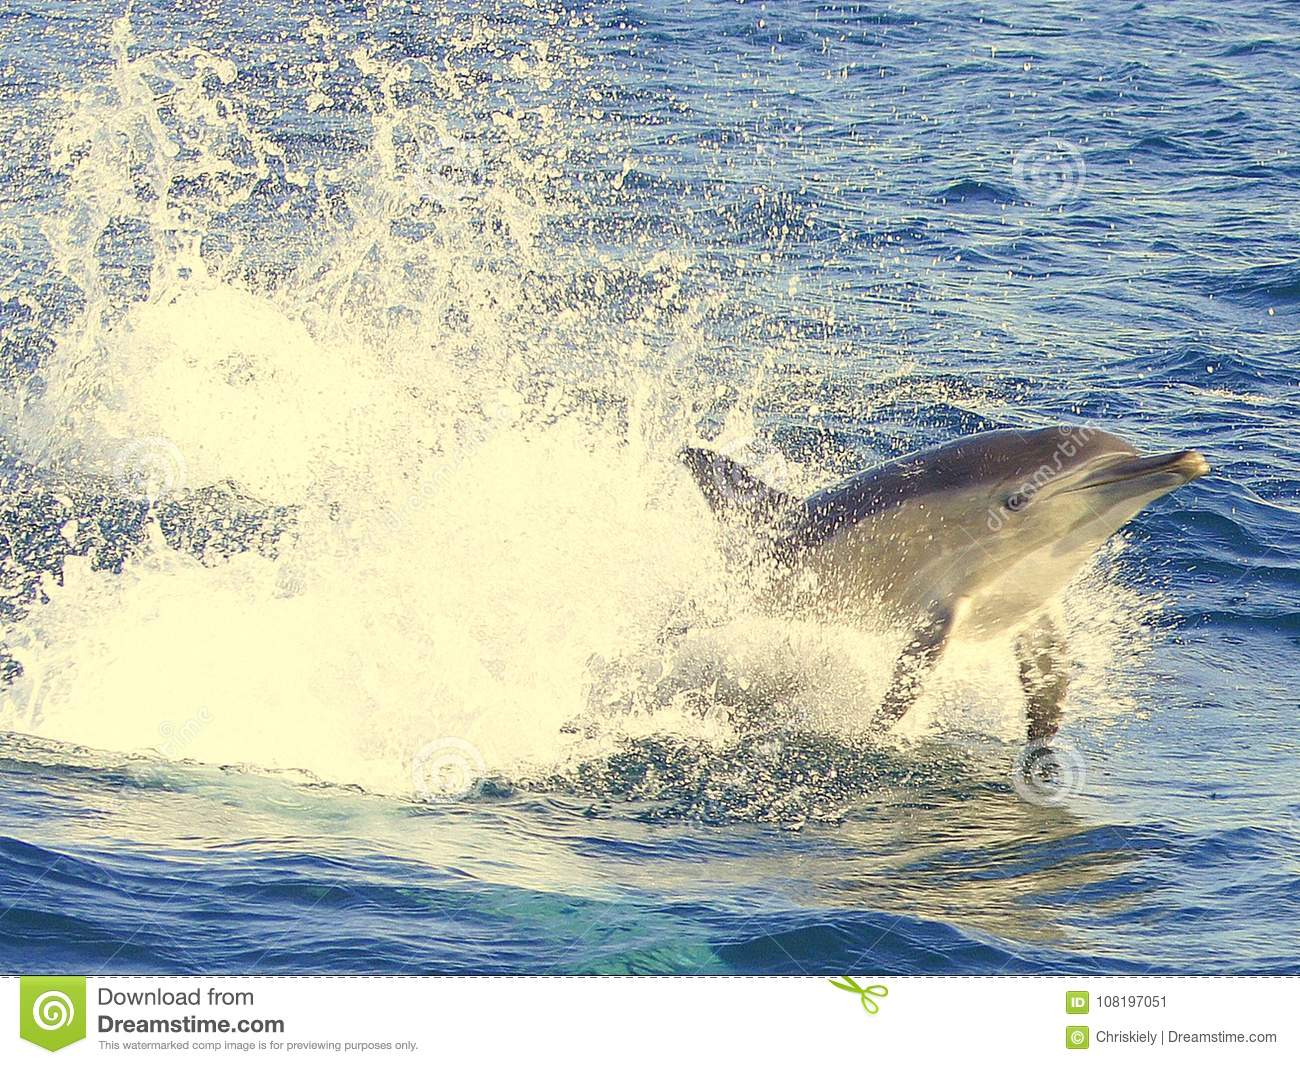 Dolphin Swimming in Blue Water